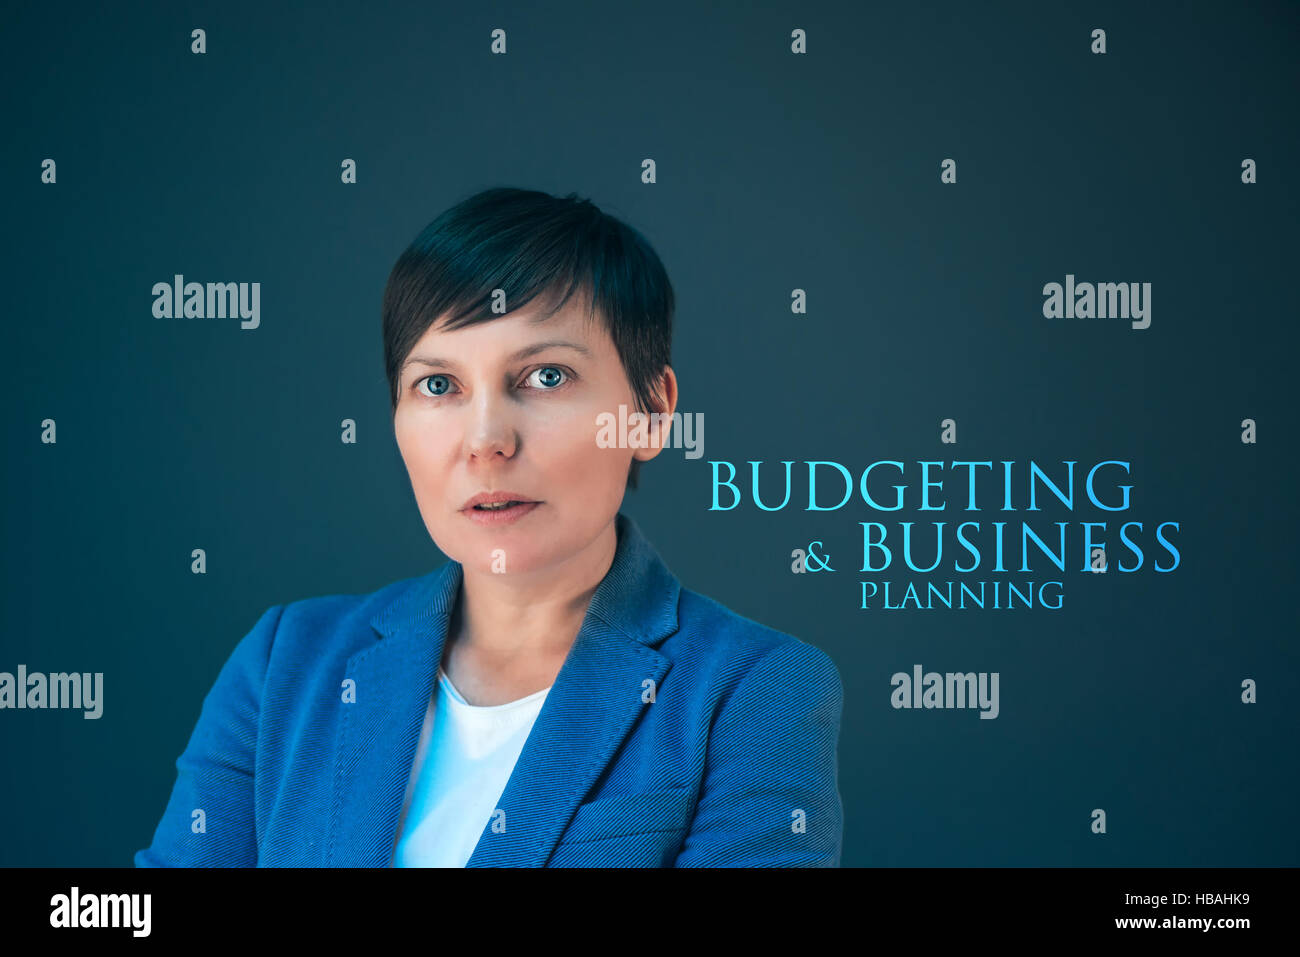 Budgeting and business planning with young adult caucasian businesswoman - Stock Image